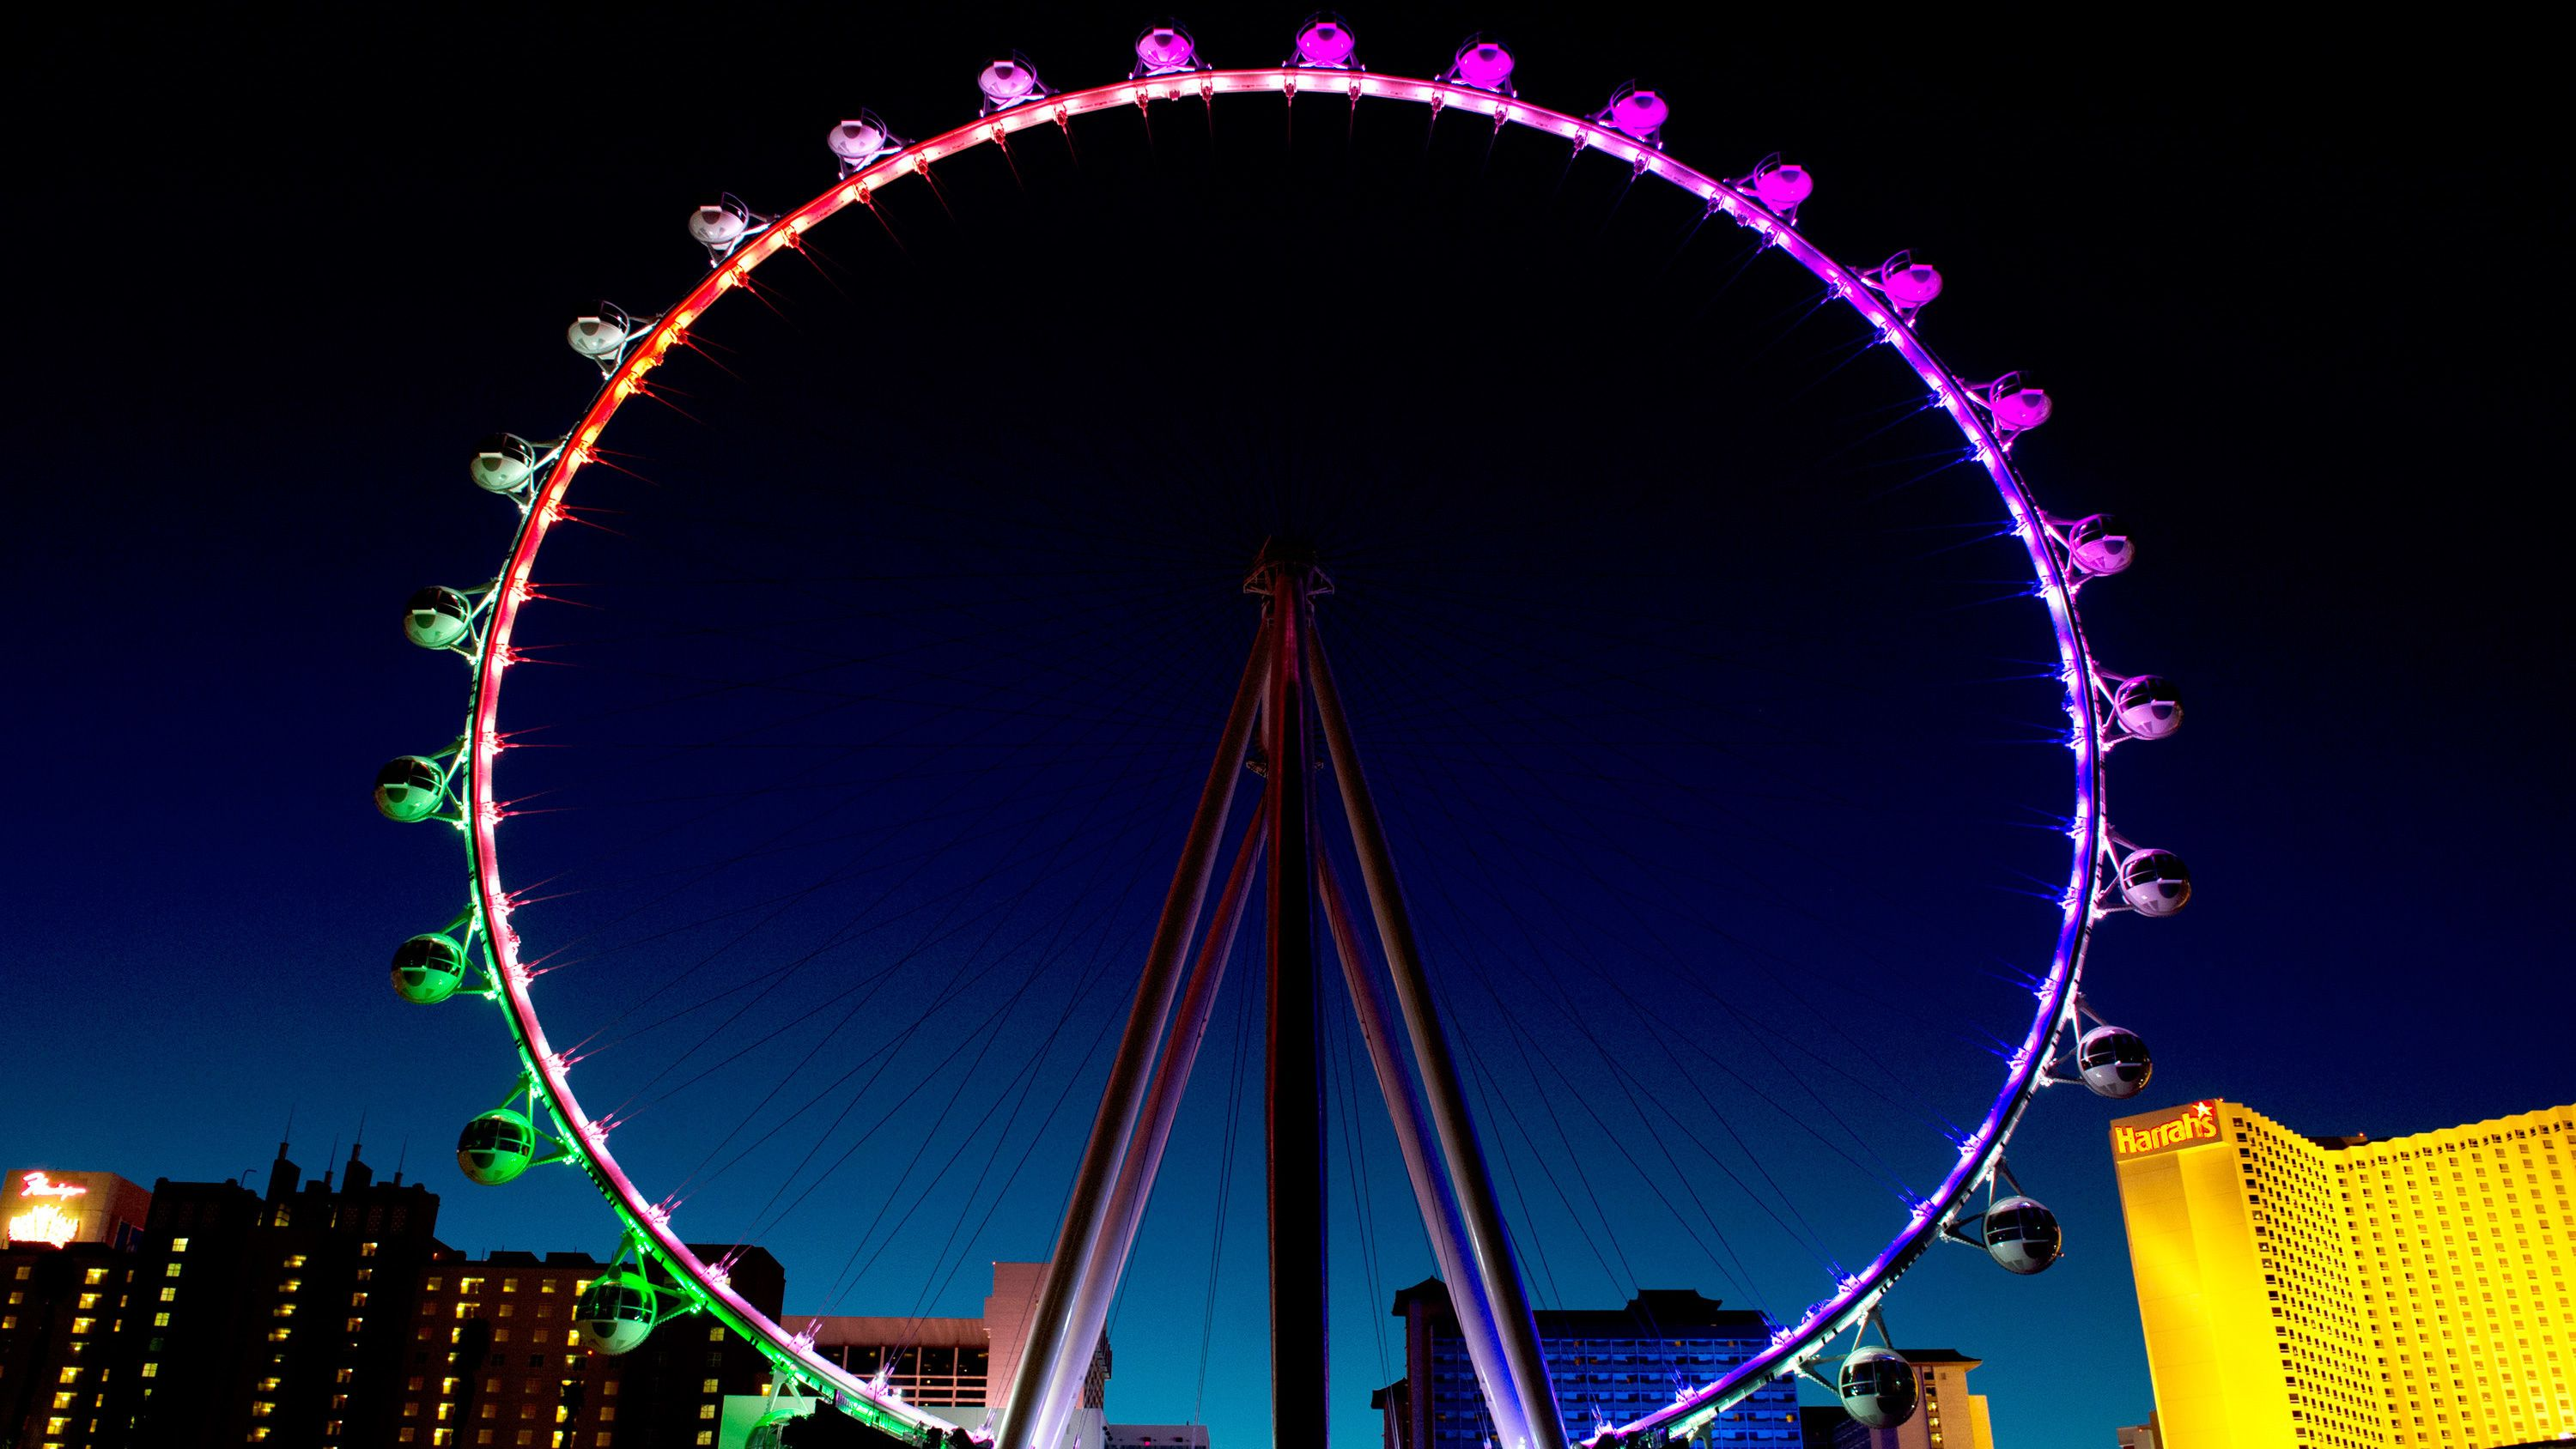 Das High Roller Observation Wheel Tickets